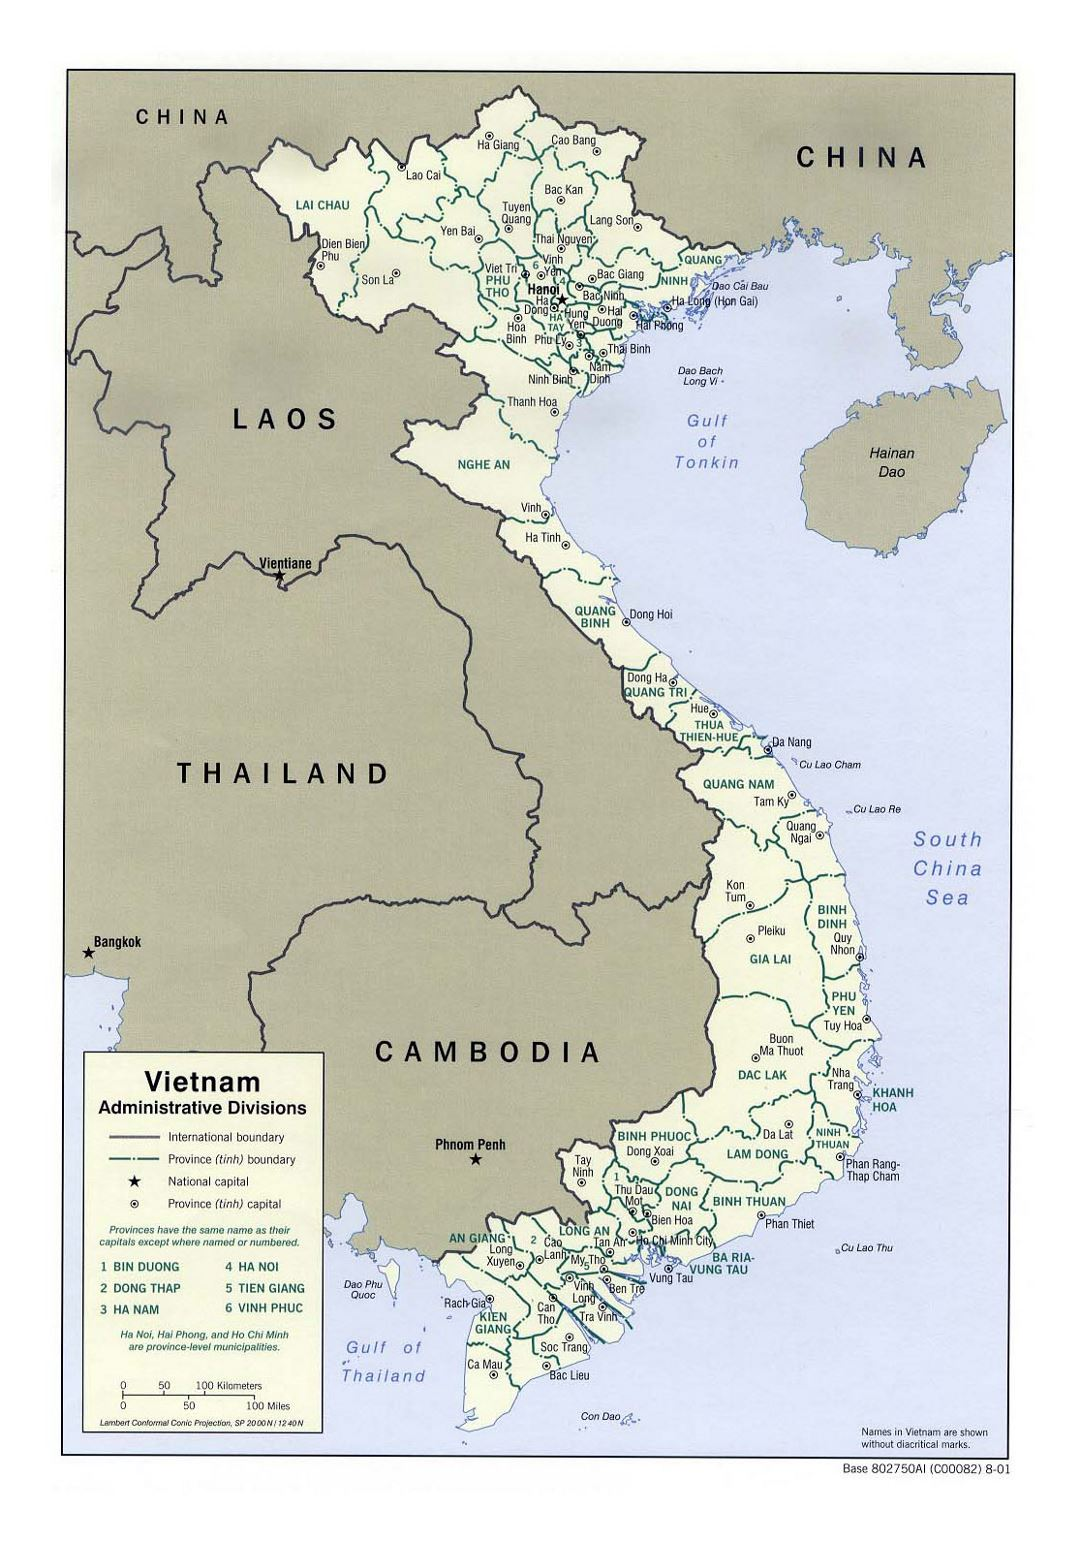 Detailed administrative divisions map of Vietnam - 2001